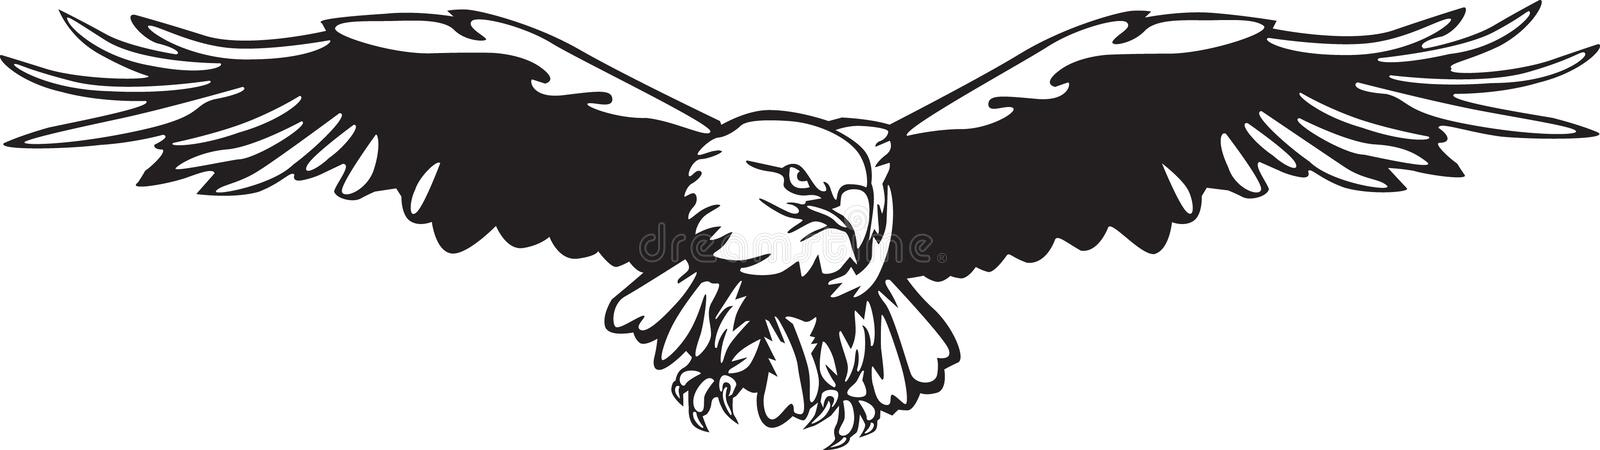 Eagle Vector stock illustration